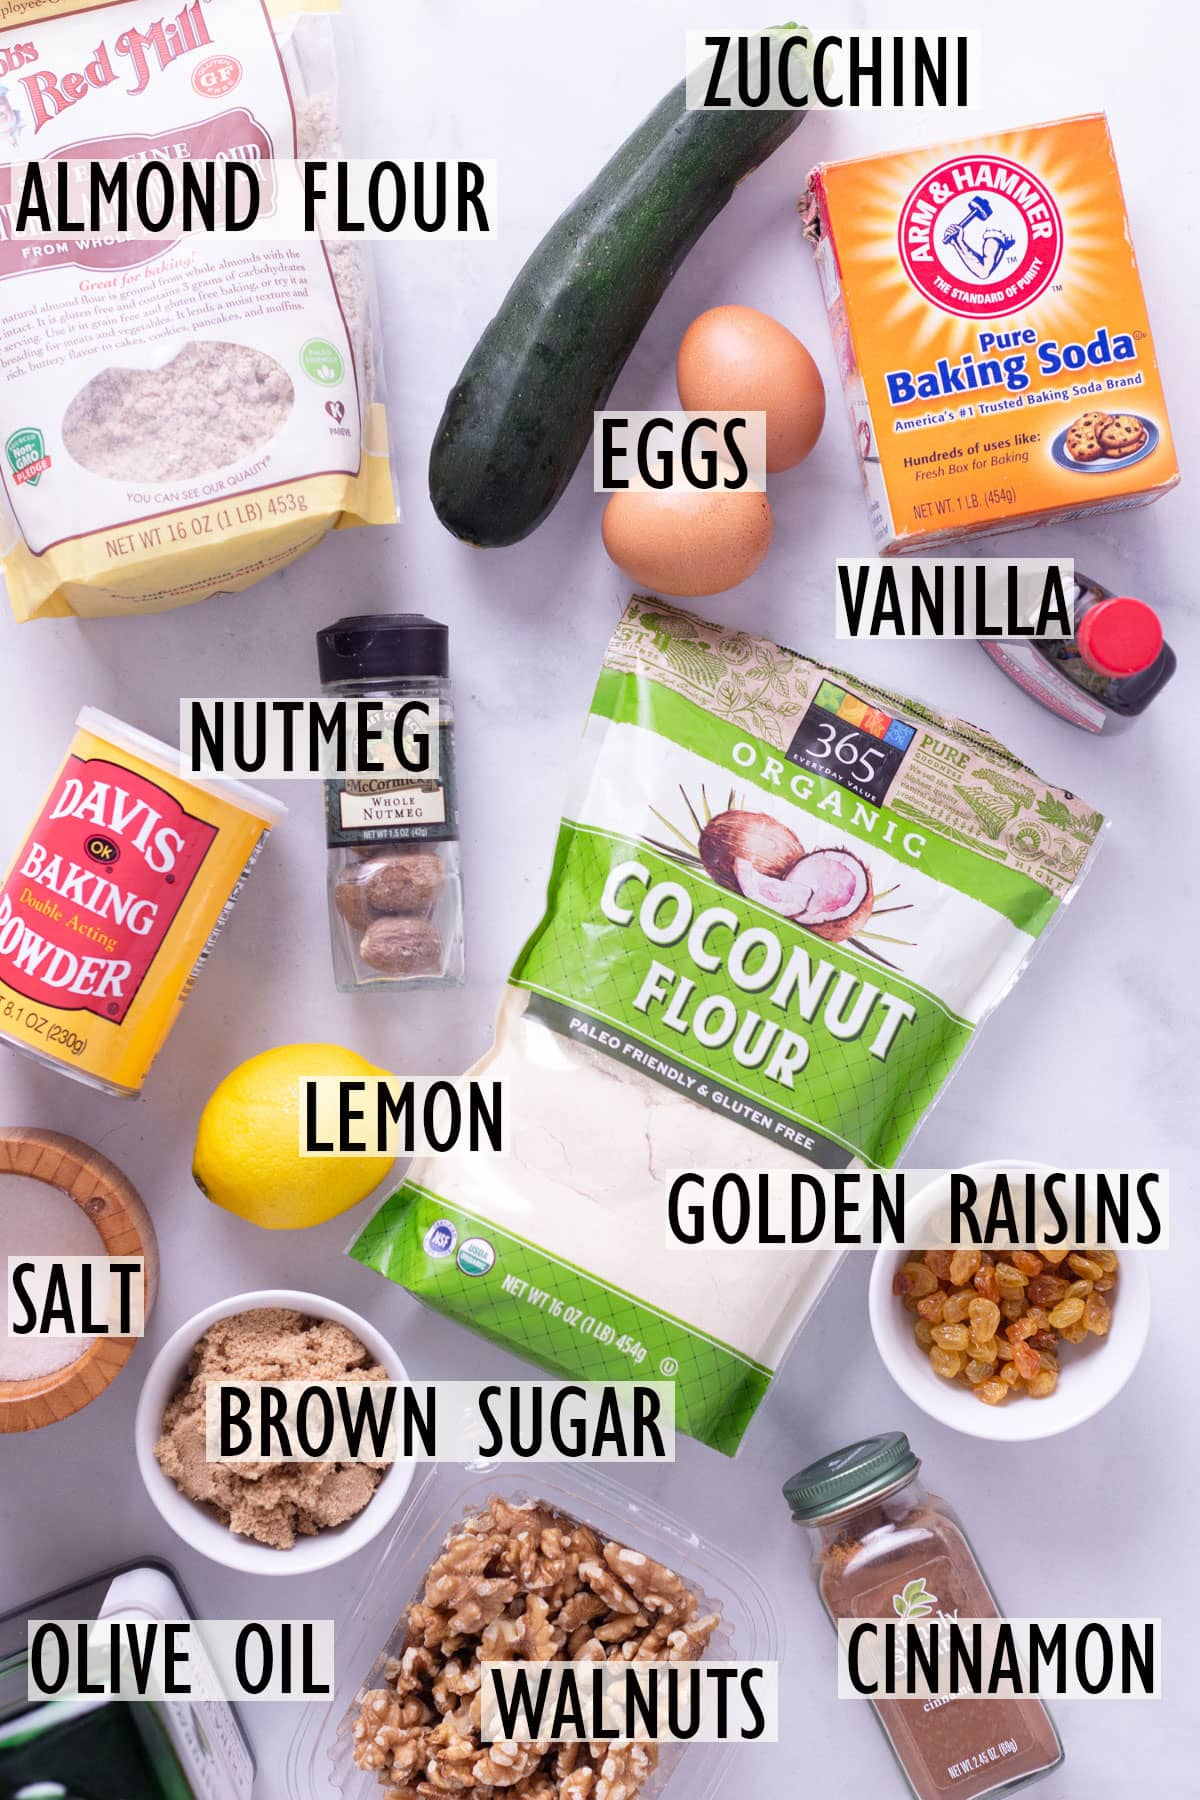 Individual ingredients needed for zucchini bread, including almond flour, coconut flour, zucchini, eggs, brown sugar, walnuts and raisins.